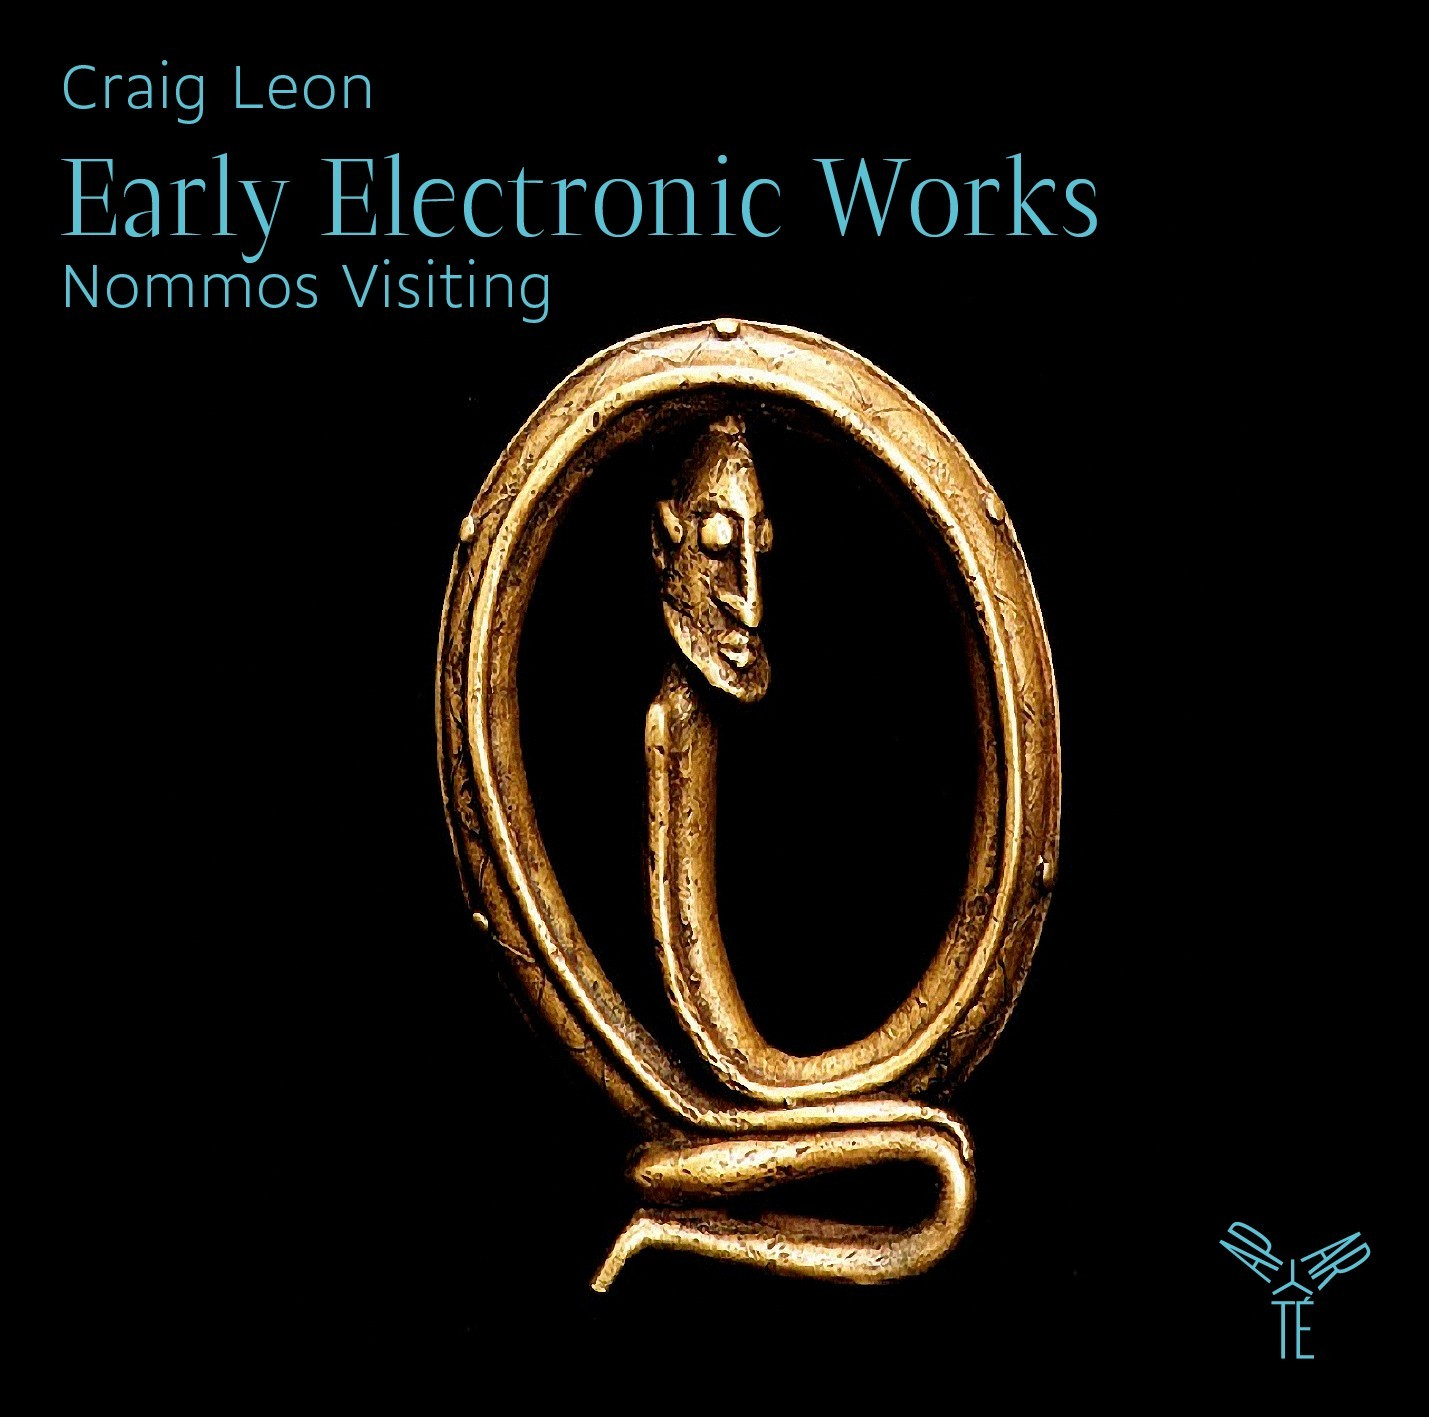 Craig Leon: Early Electronic Works